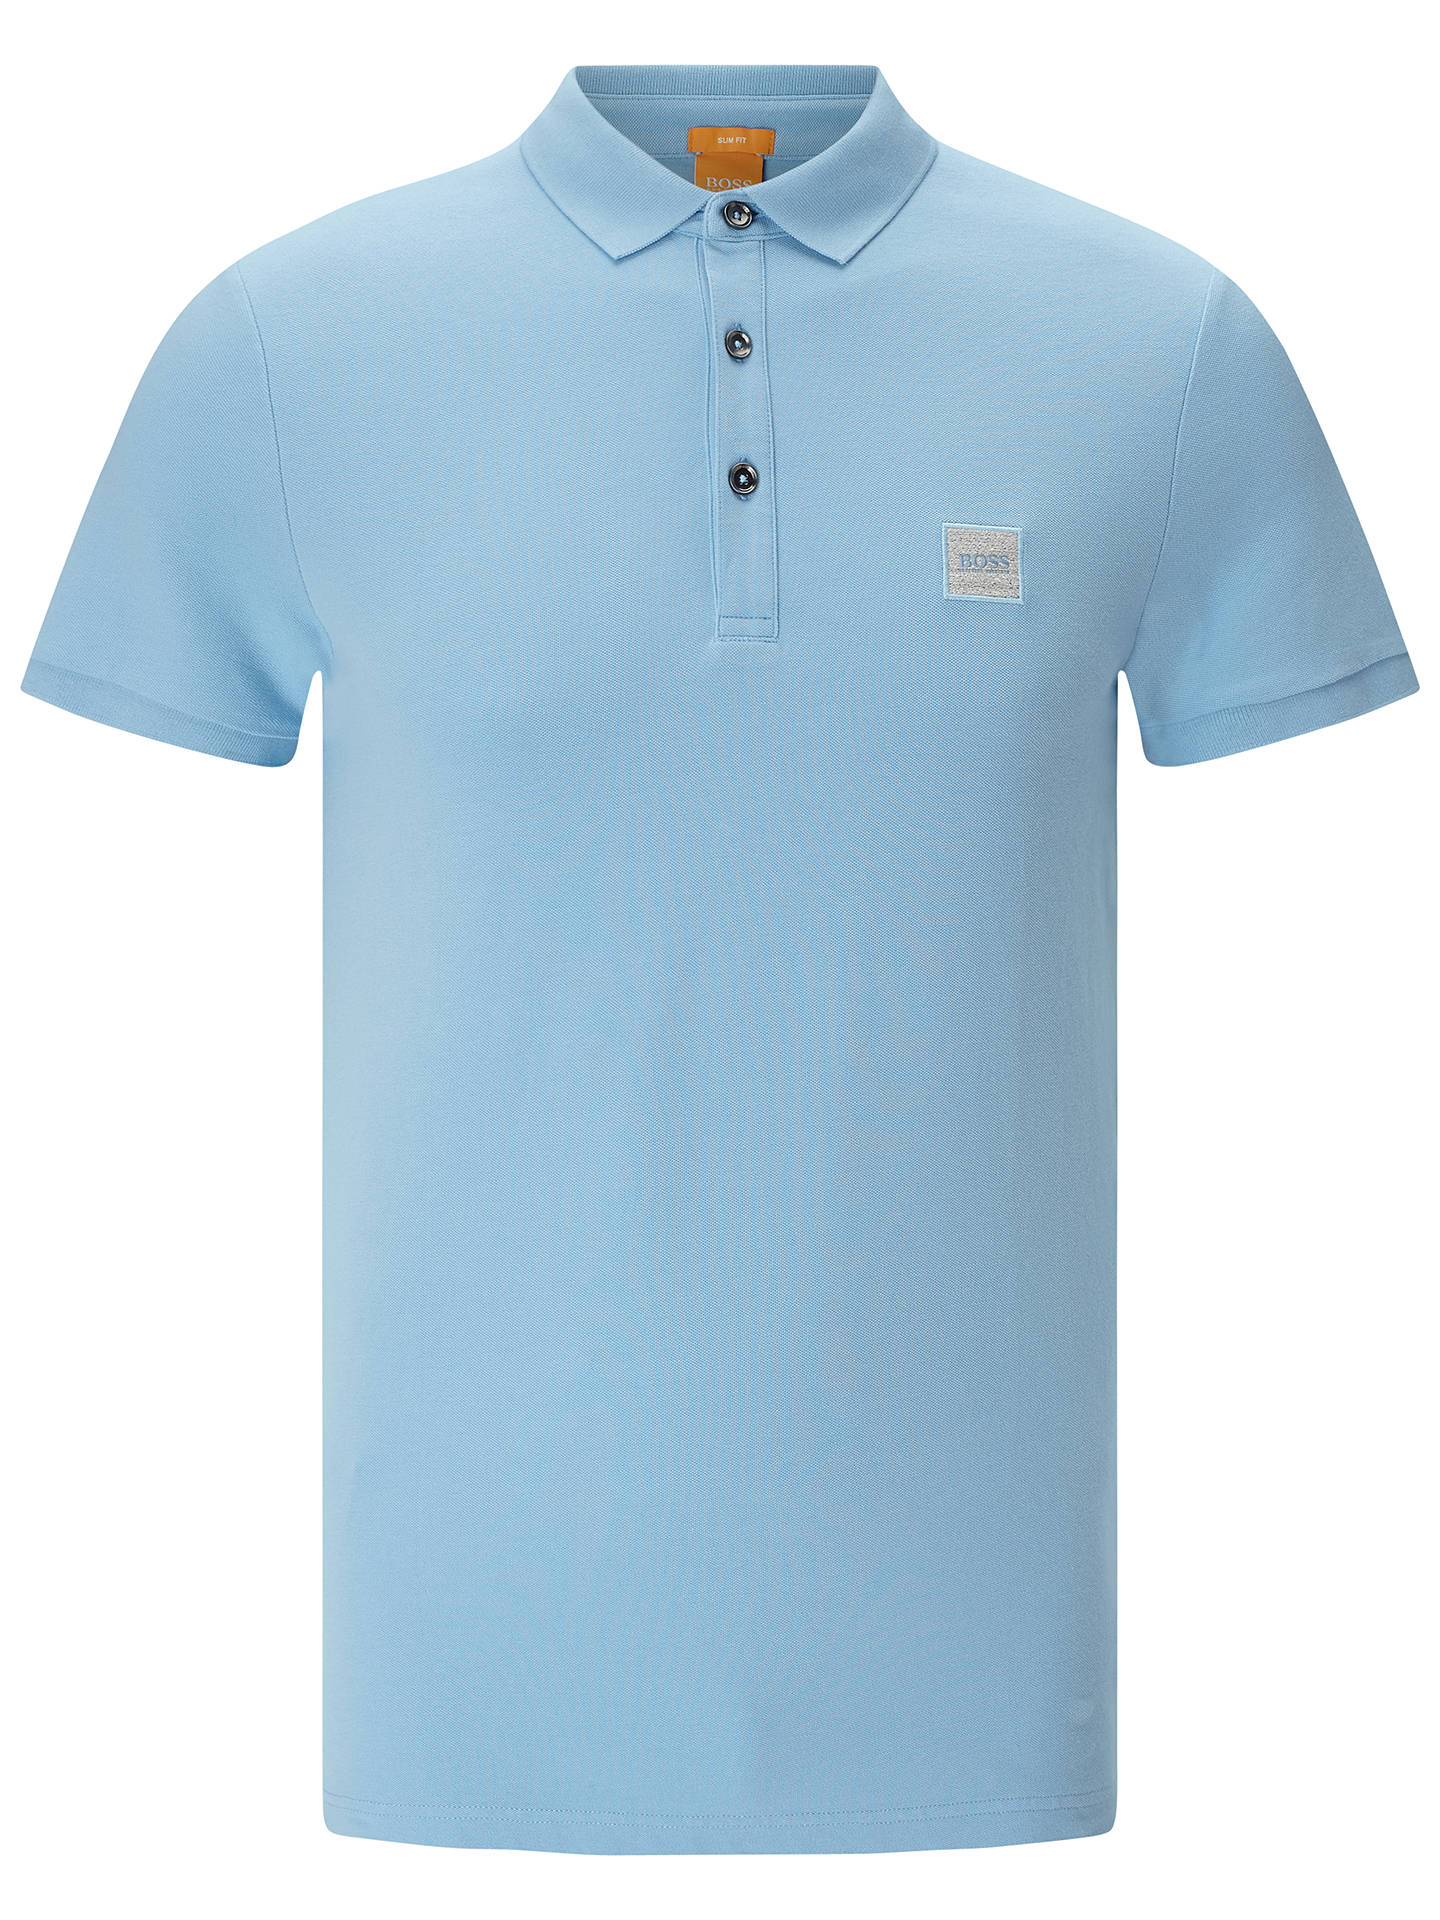 58eee628 BOSS Orange Pavlik Slim Fit Polo Shirt at John Lewis & Partners